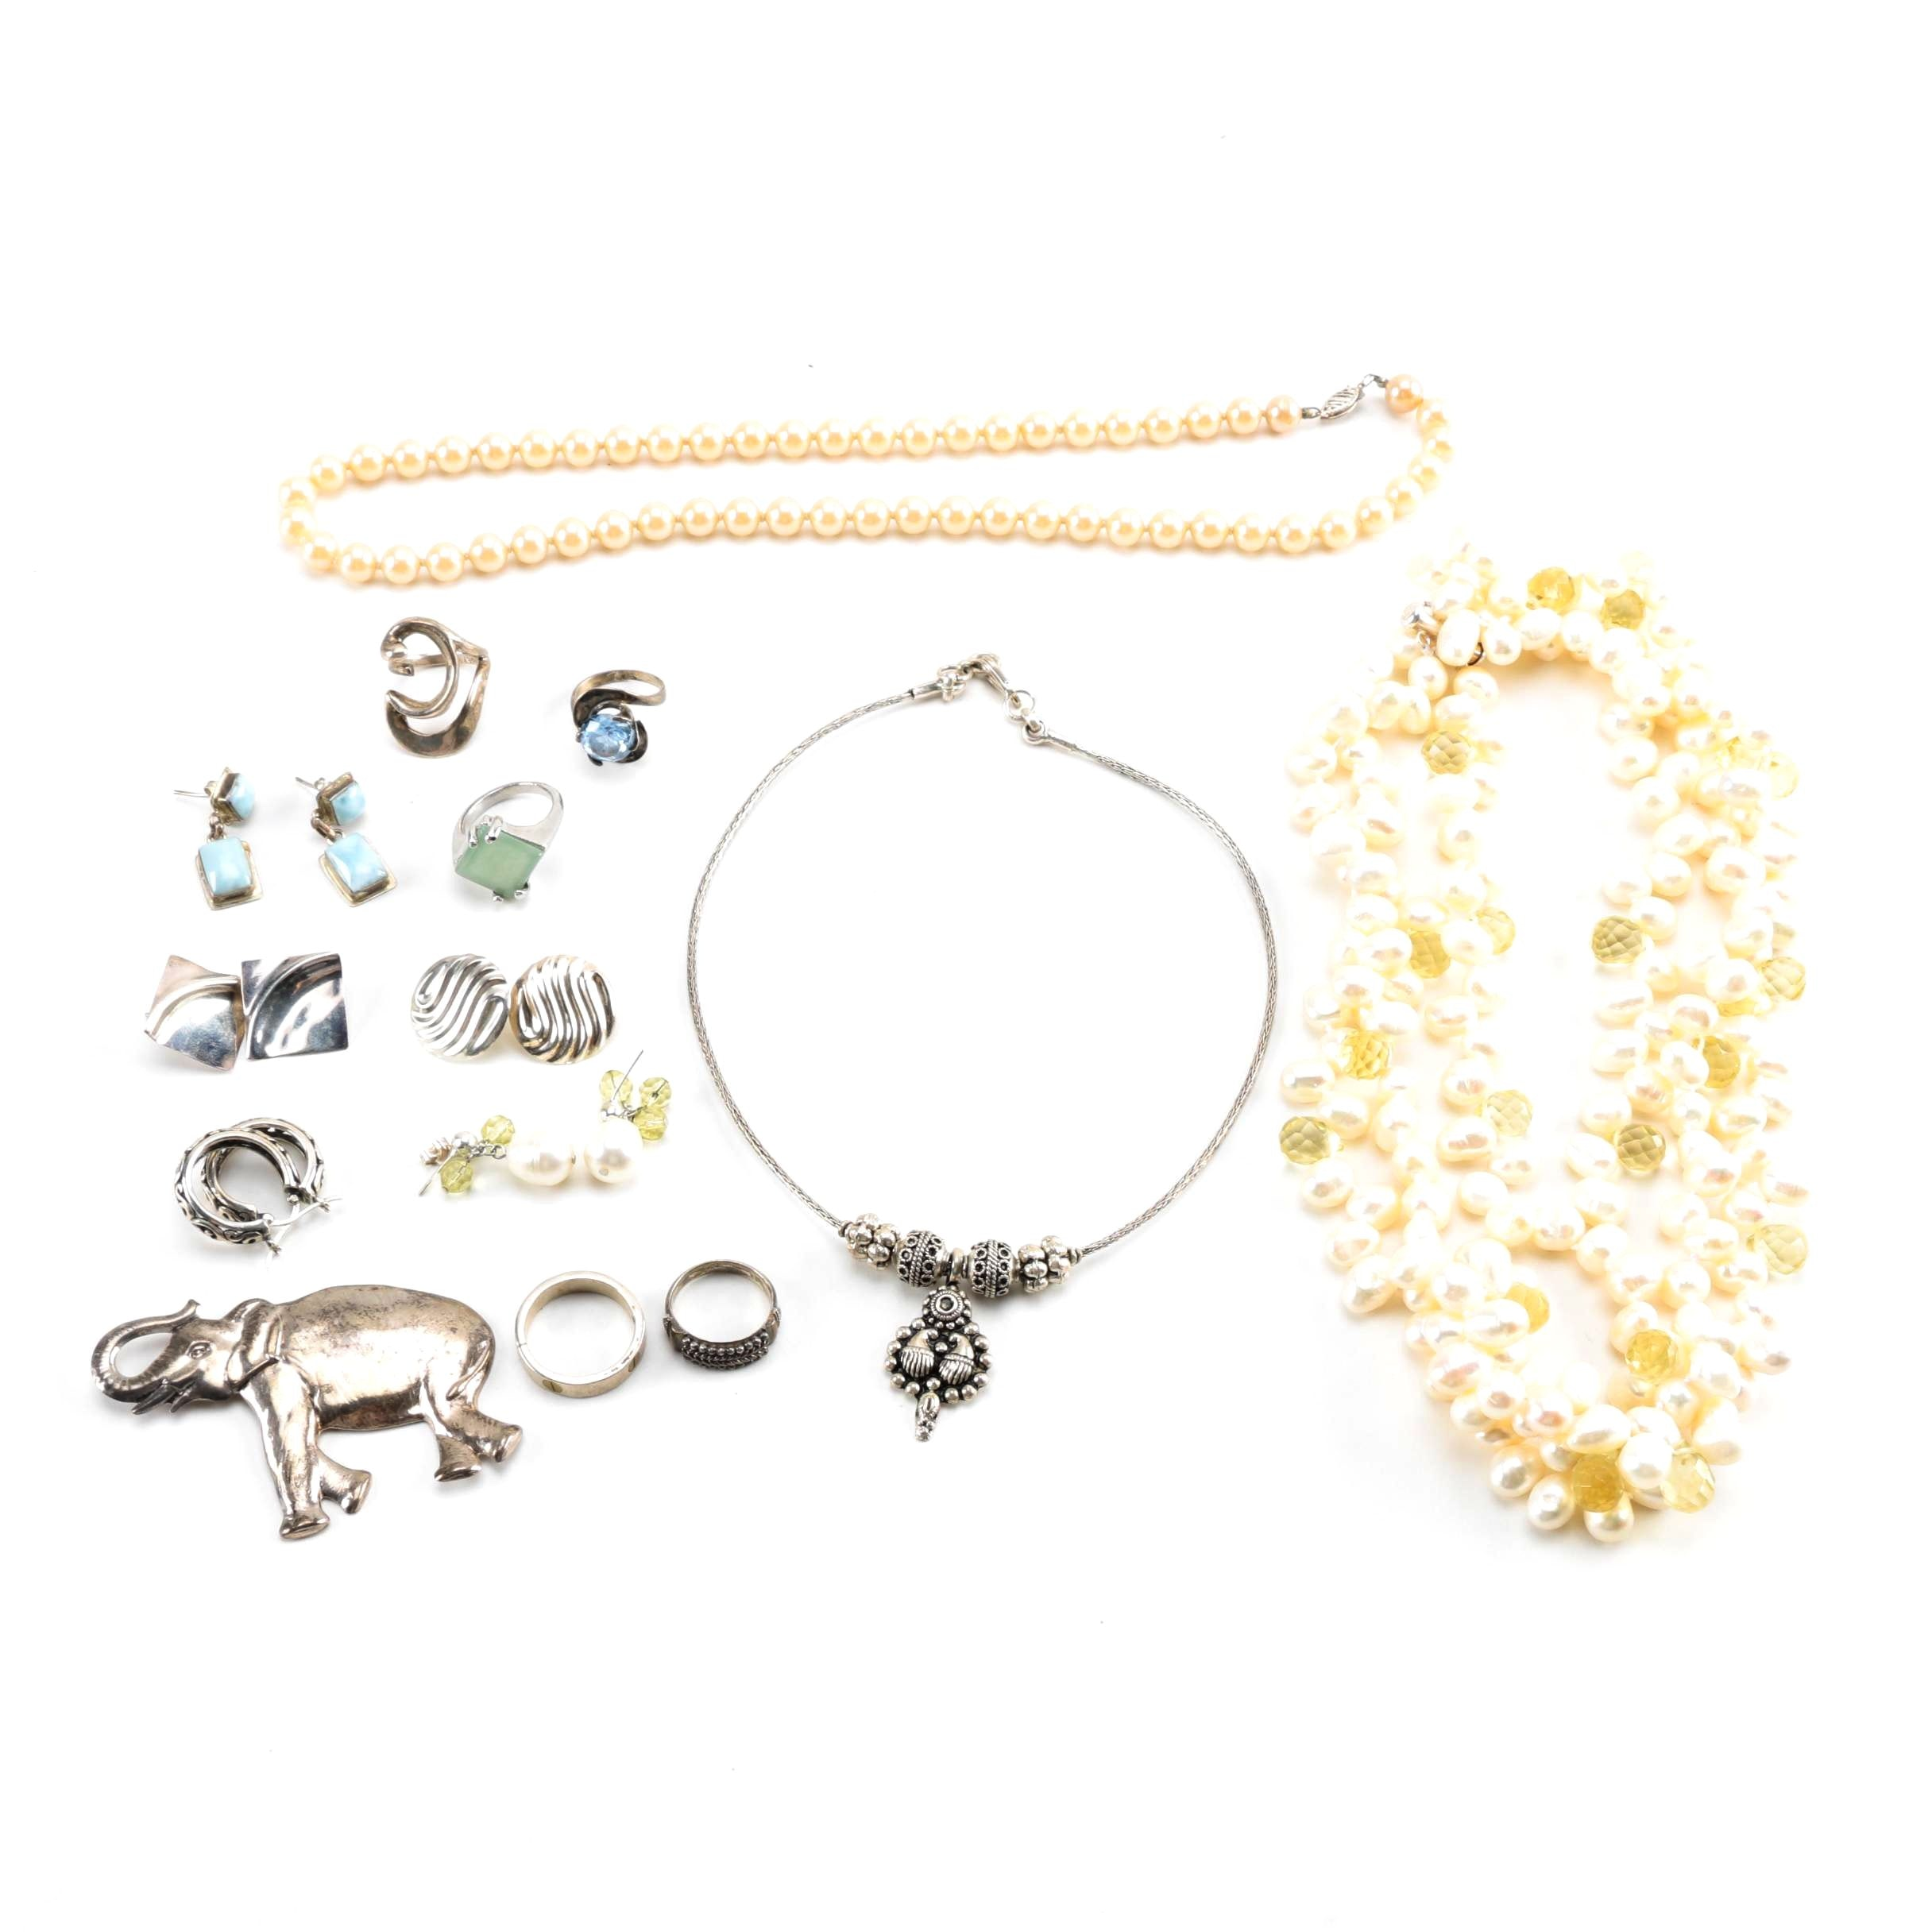 Sterling Silver Jewelry Including Cultured Pearls